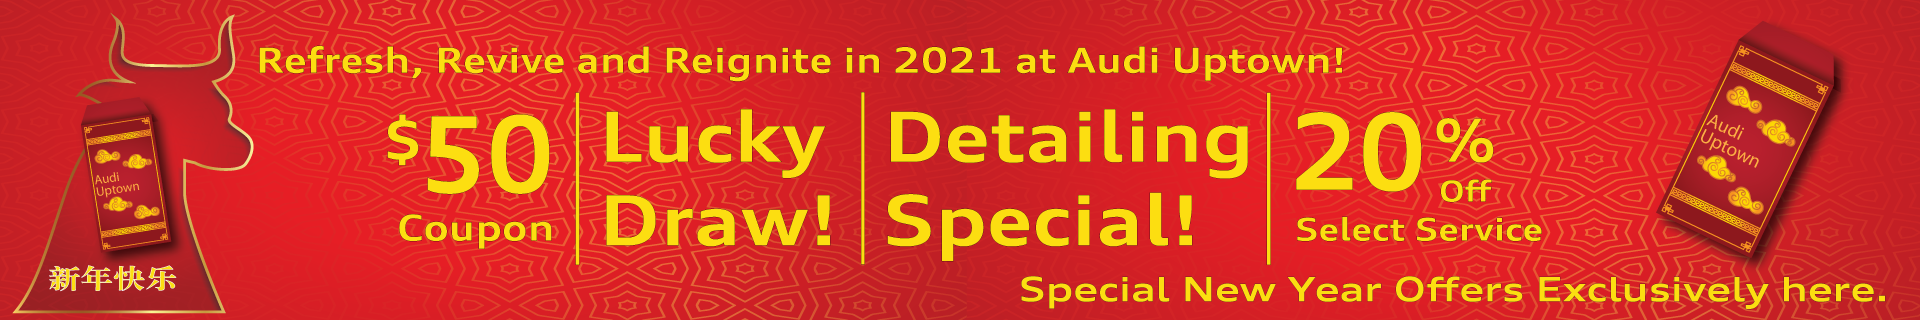 Audi Uptown Chinese New Year Special Offers